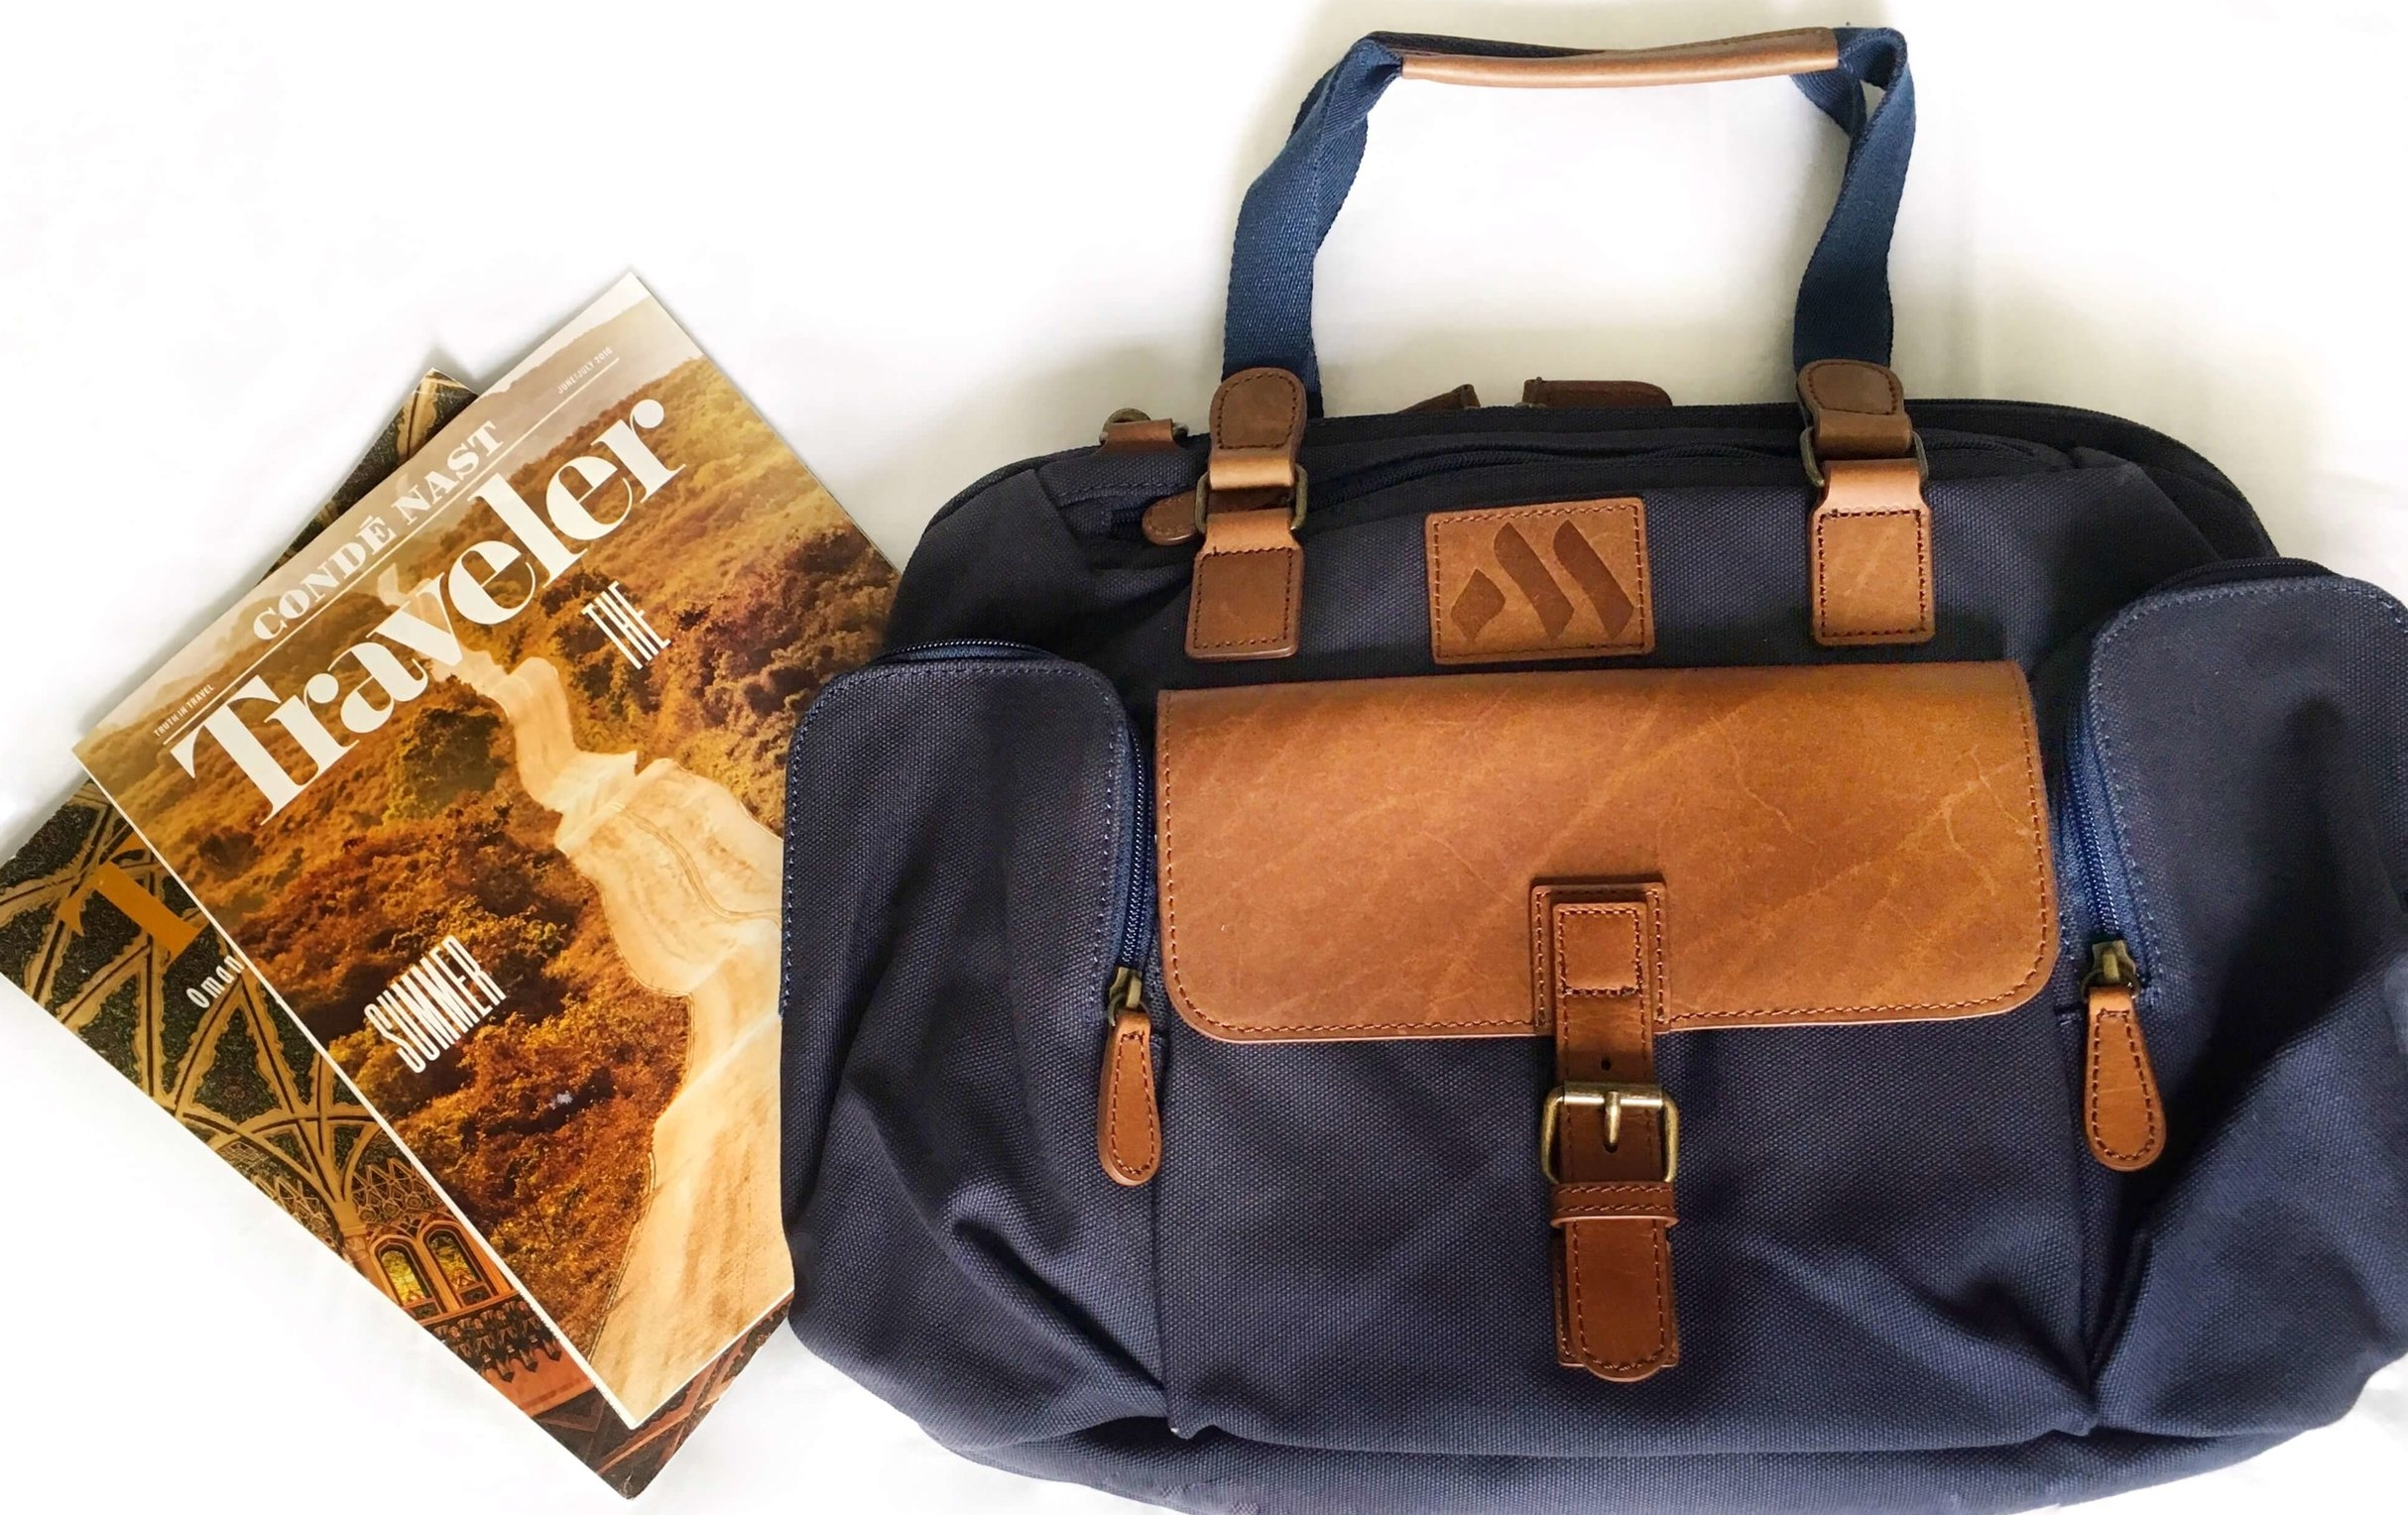 machir-backpack-briefcase-duffel-bag-review-ochristine